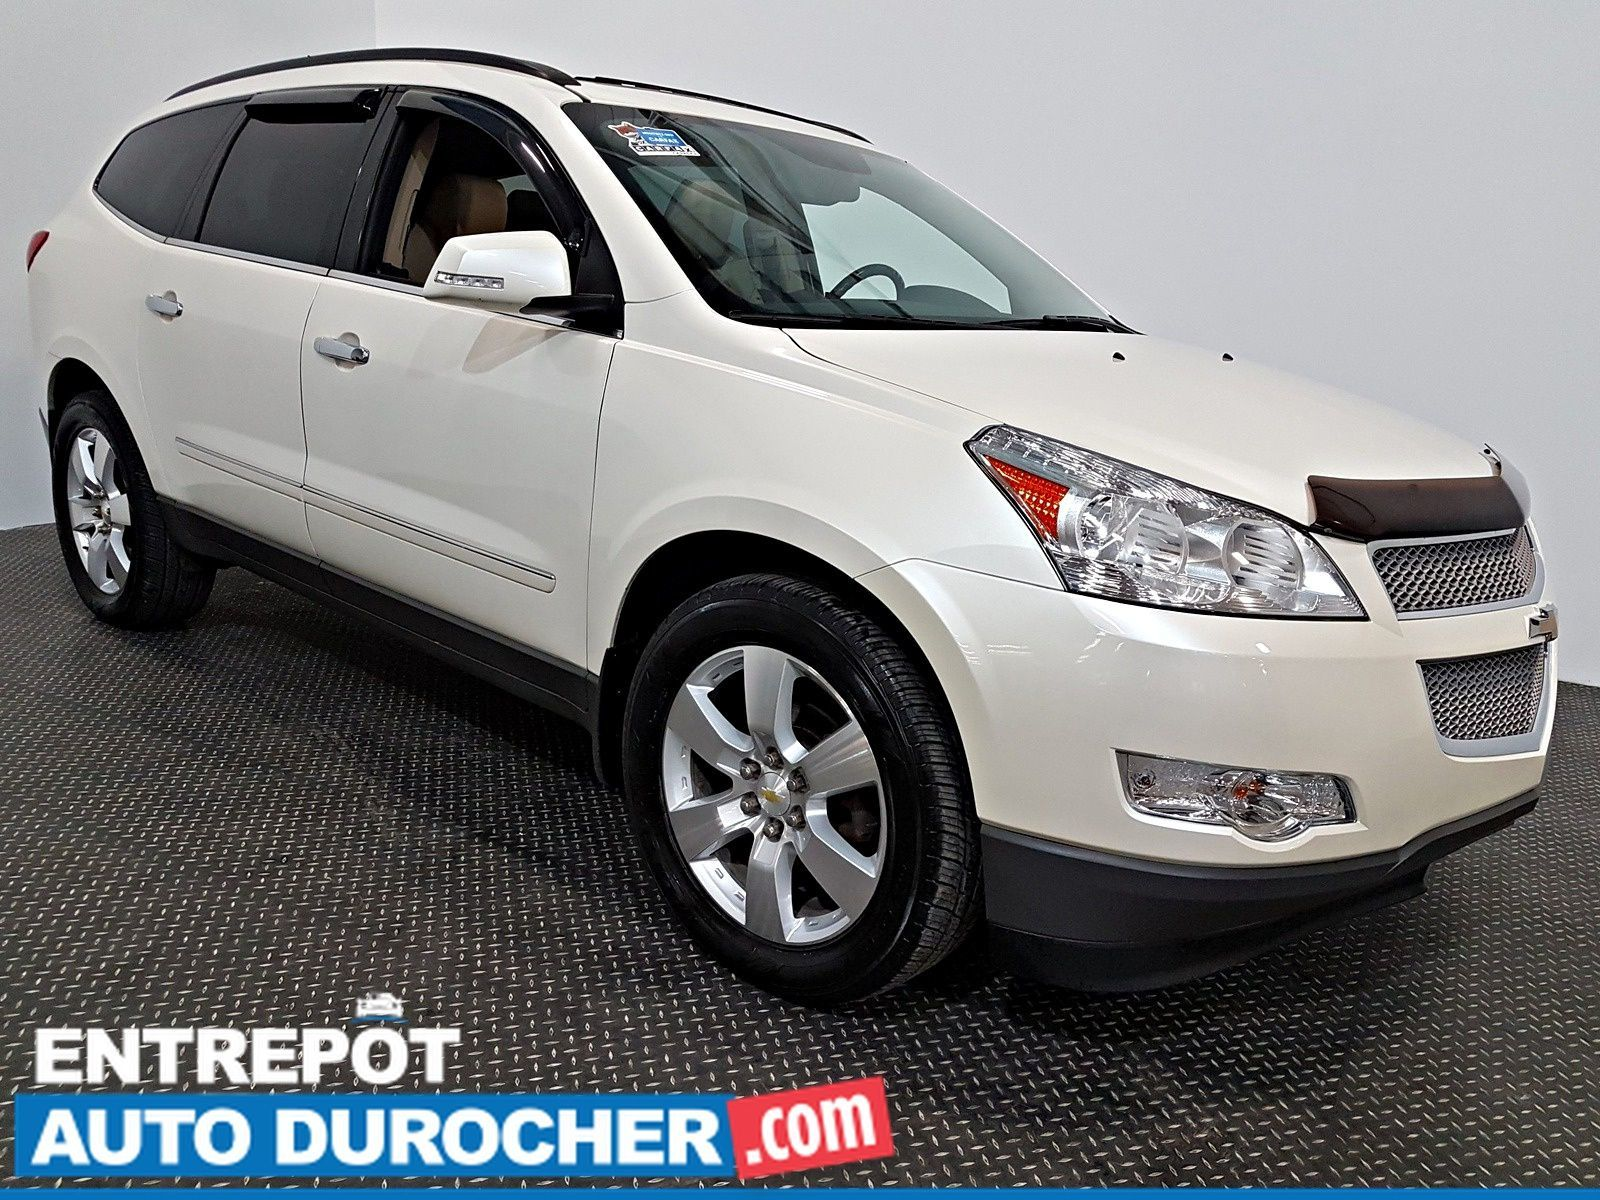 hight resolution of auto durocher used chevrolet traverse 2012 for sale in laval stock n 2741106